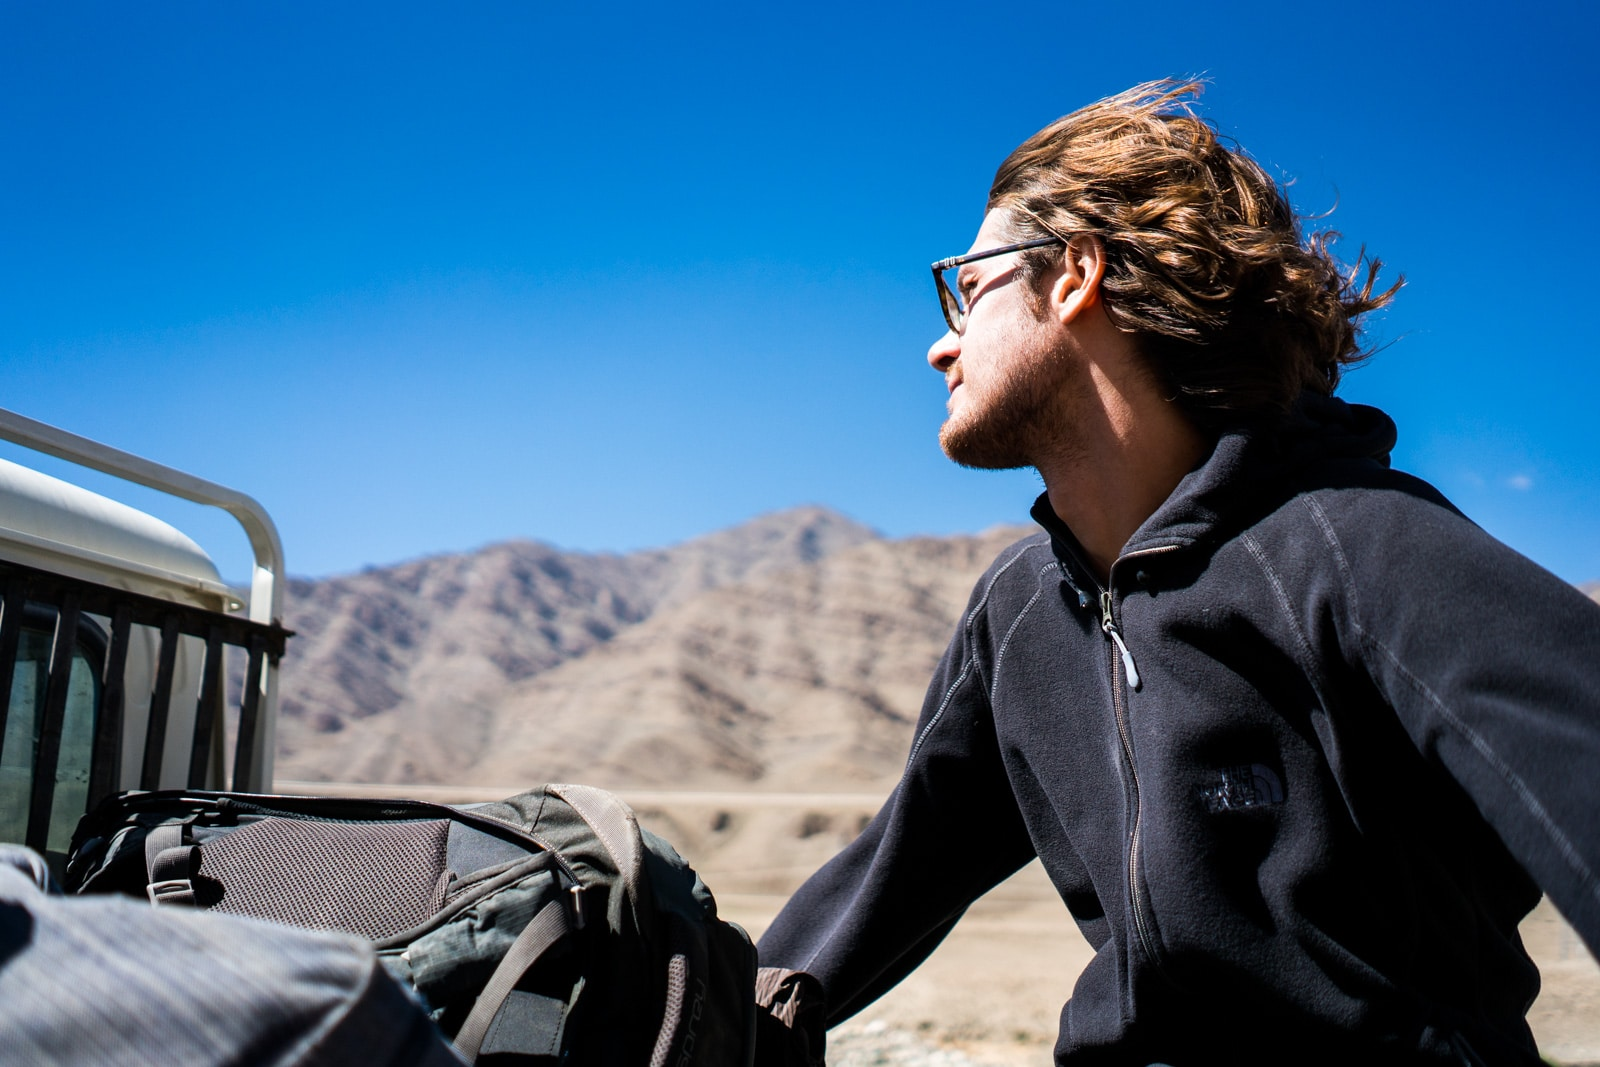 Hitchhiking the Leh - Manali highway - Sebastiaan riding in the pickup truck - Lost With Purpose travel blog